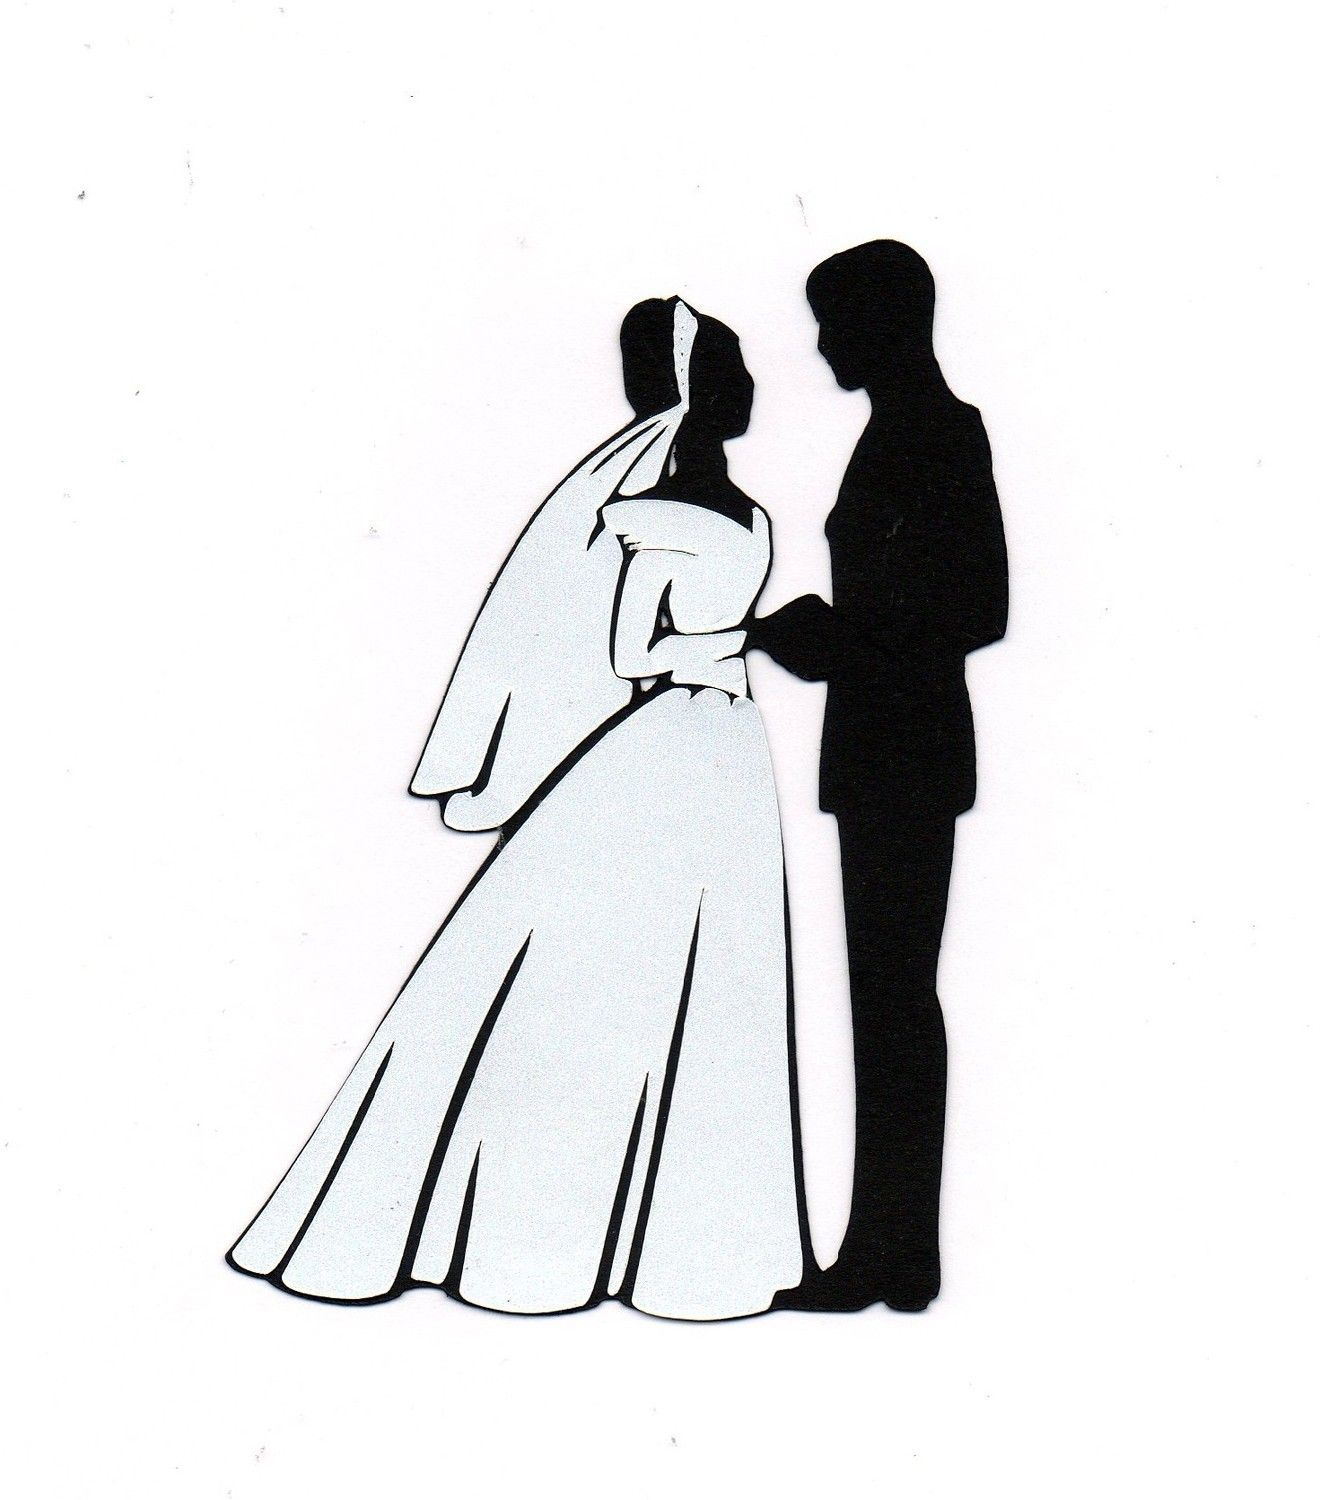 bride silhouette clipart at getdrawings com free for personal use rh getdrawings com bride and groom clipart cutouts bride and groom clipart images